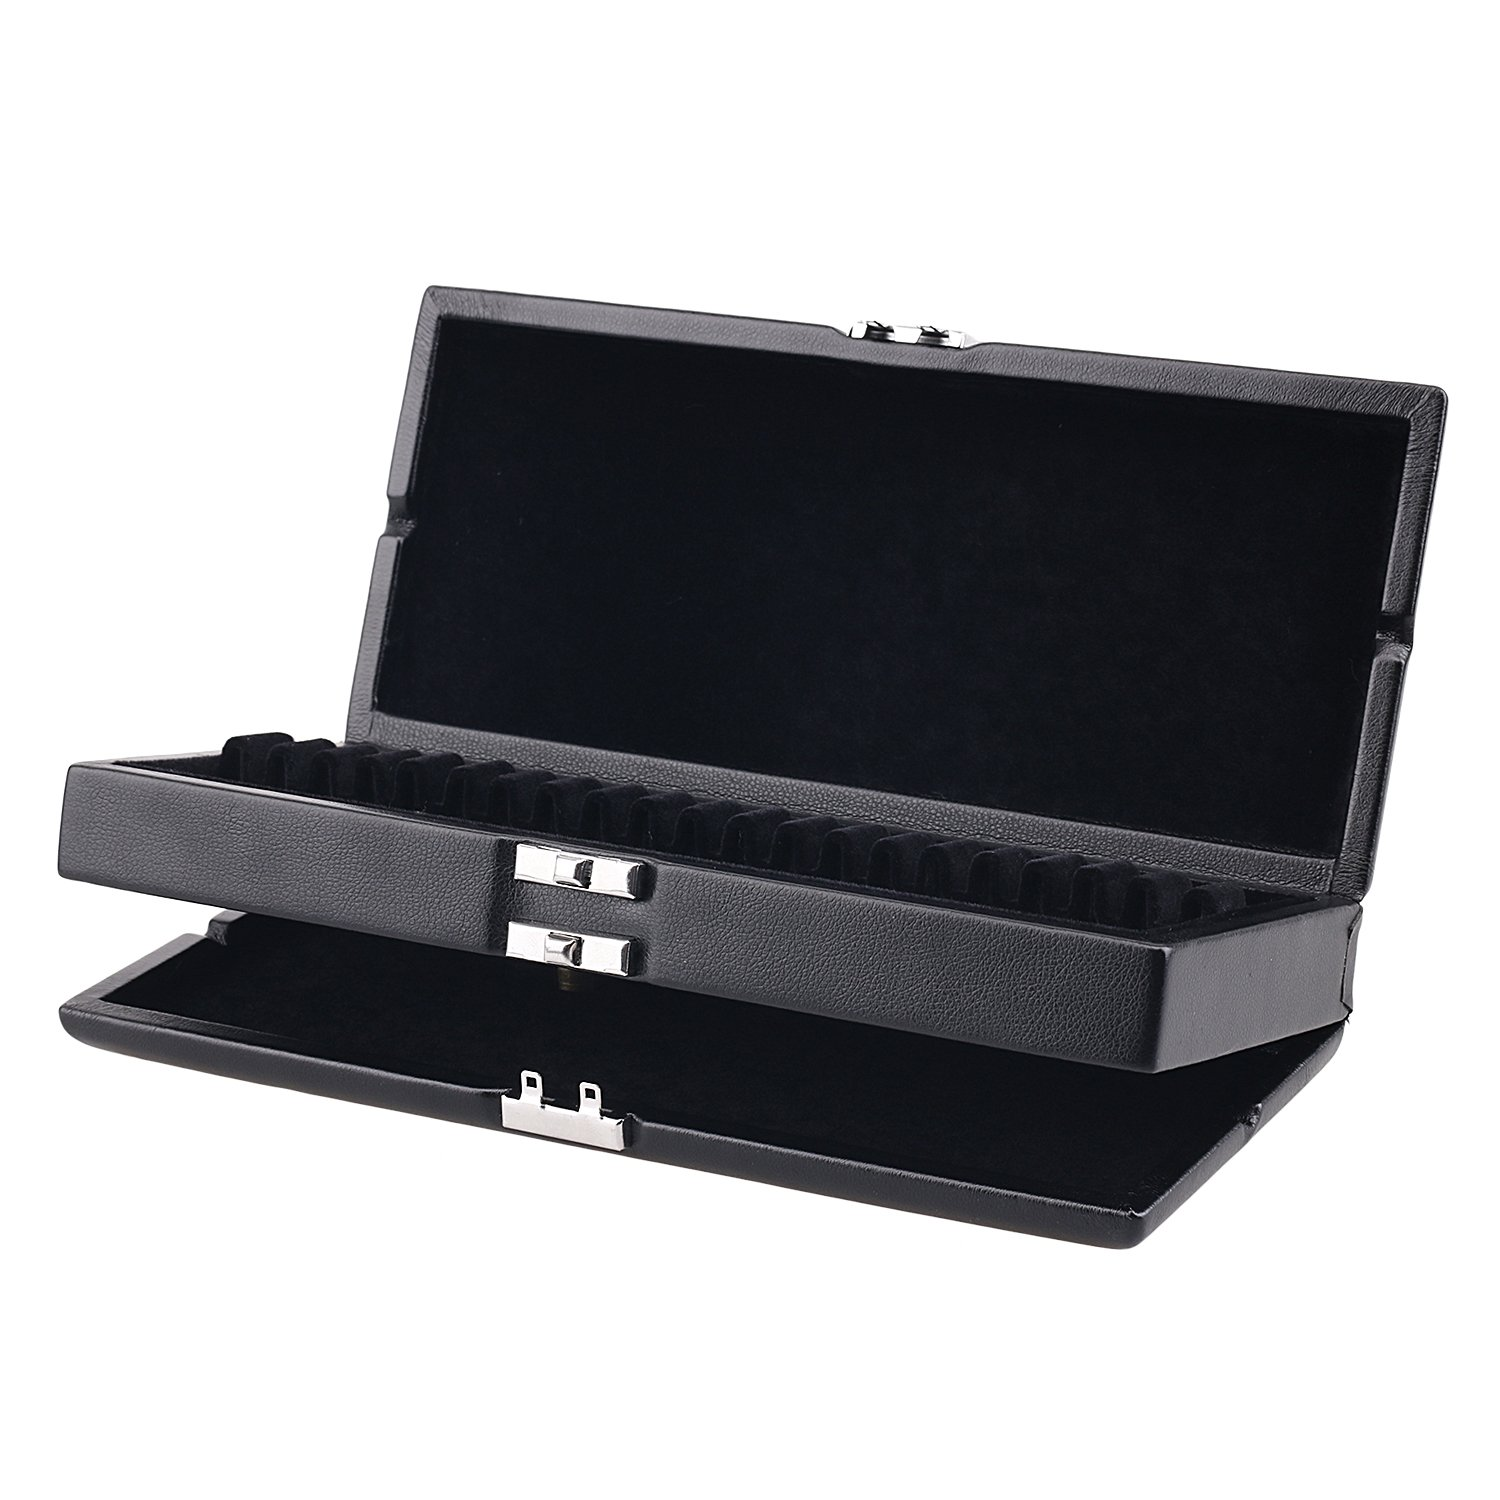 Oboe Reed Case Black PU Leather 2 Layers Reed Case for 40 Oboe Reeds Protect Against Moisture sunflower